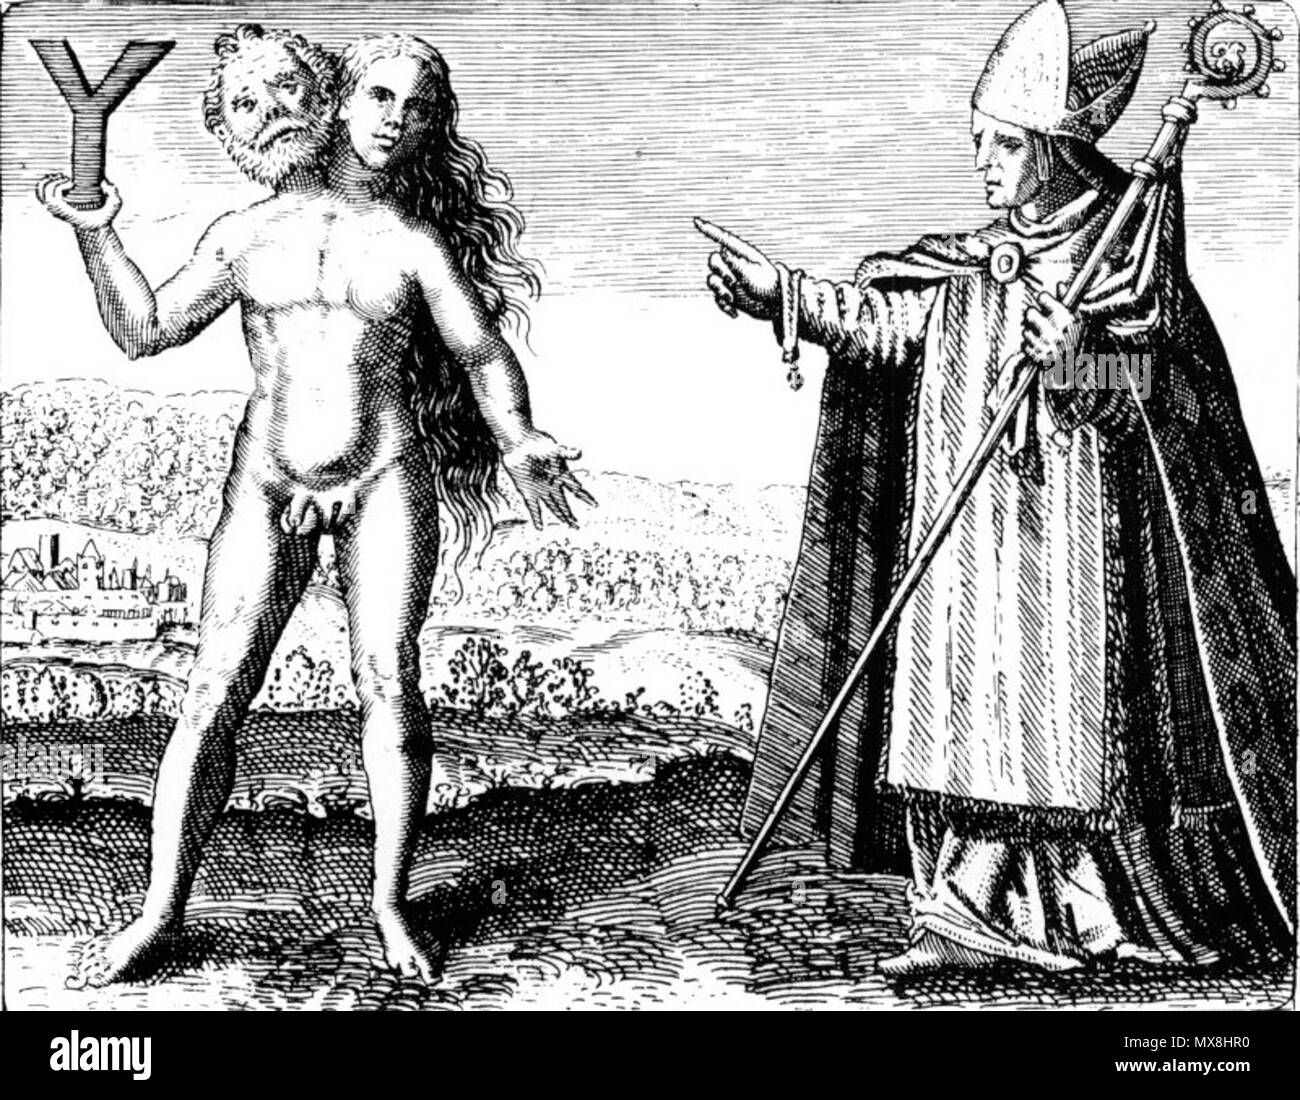 . English: An engraving from Michael Maier's Symbola Aureae Mensae (1617) we see Albertus Magnus pointing to an alchemical androgyne holding the letter Y. Zola (42) explains, 'The Y is, as Philo taught, the symbol of the Word which pierces the essence of being. The Nassine Gnostics taught that it represented the intimate nature of being, which is male and female and, as such, eternal.' . circa 1617. Michael Maier (1568–1622) 191 Engraving from Michael Maier's Symbola Aureae Mensae (1617) - Stock Image